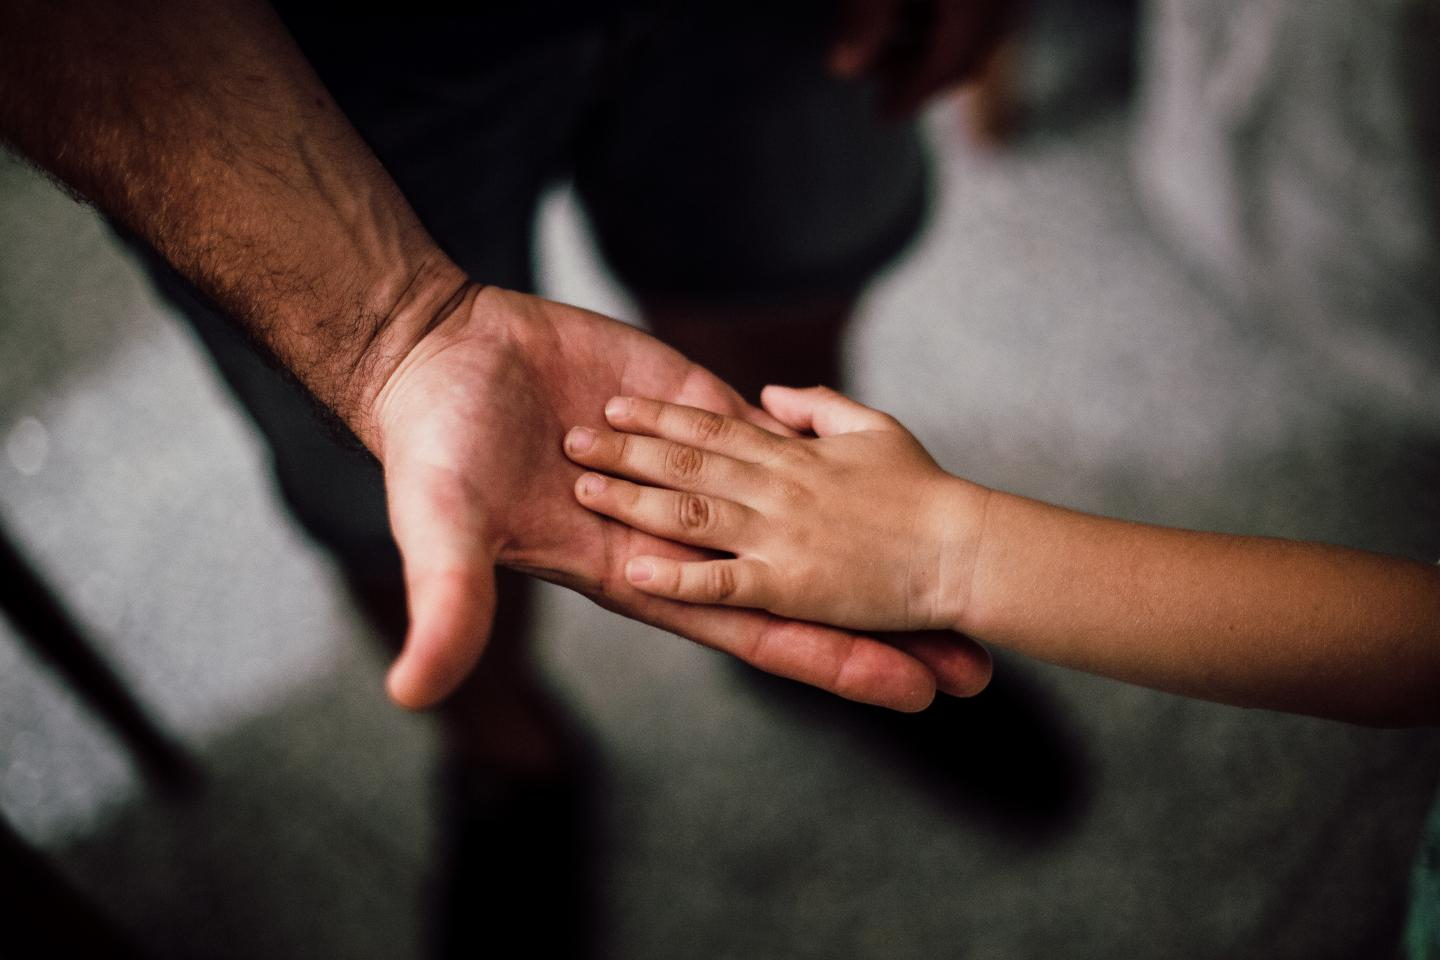 Child holding adult's hand